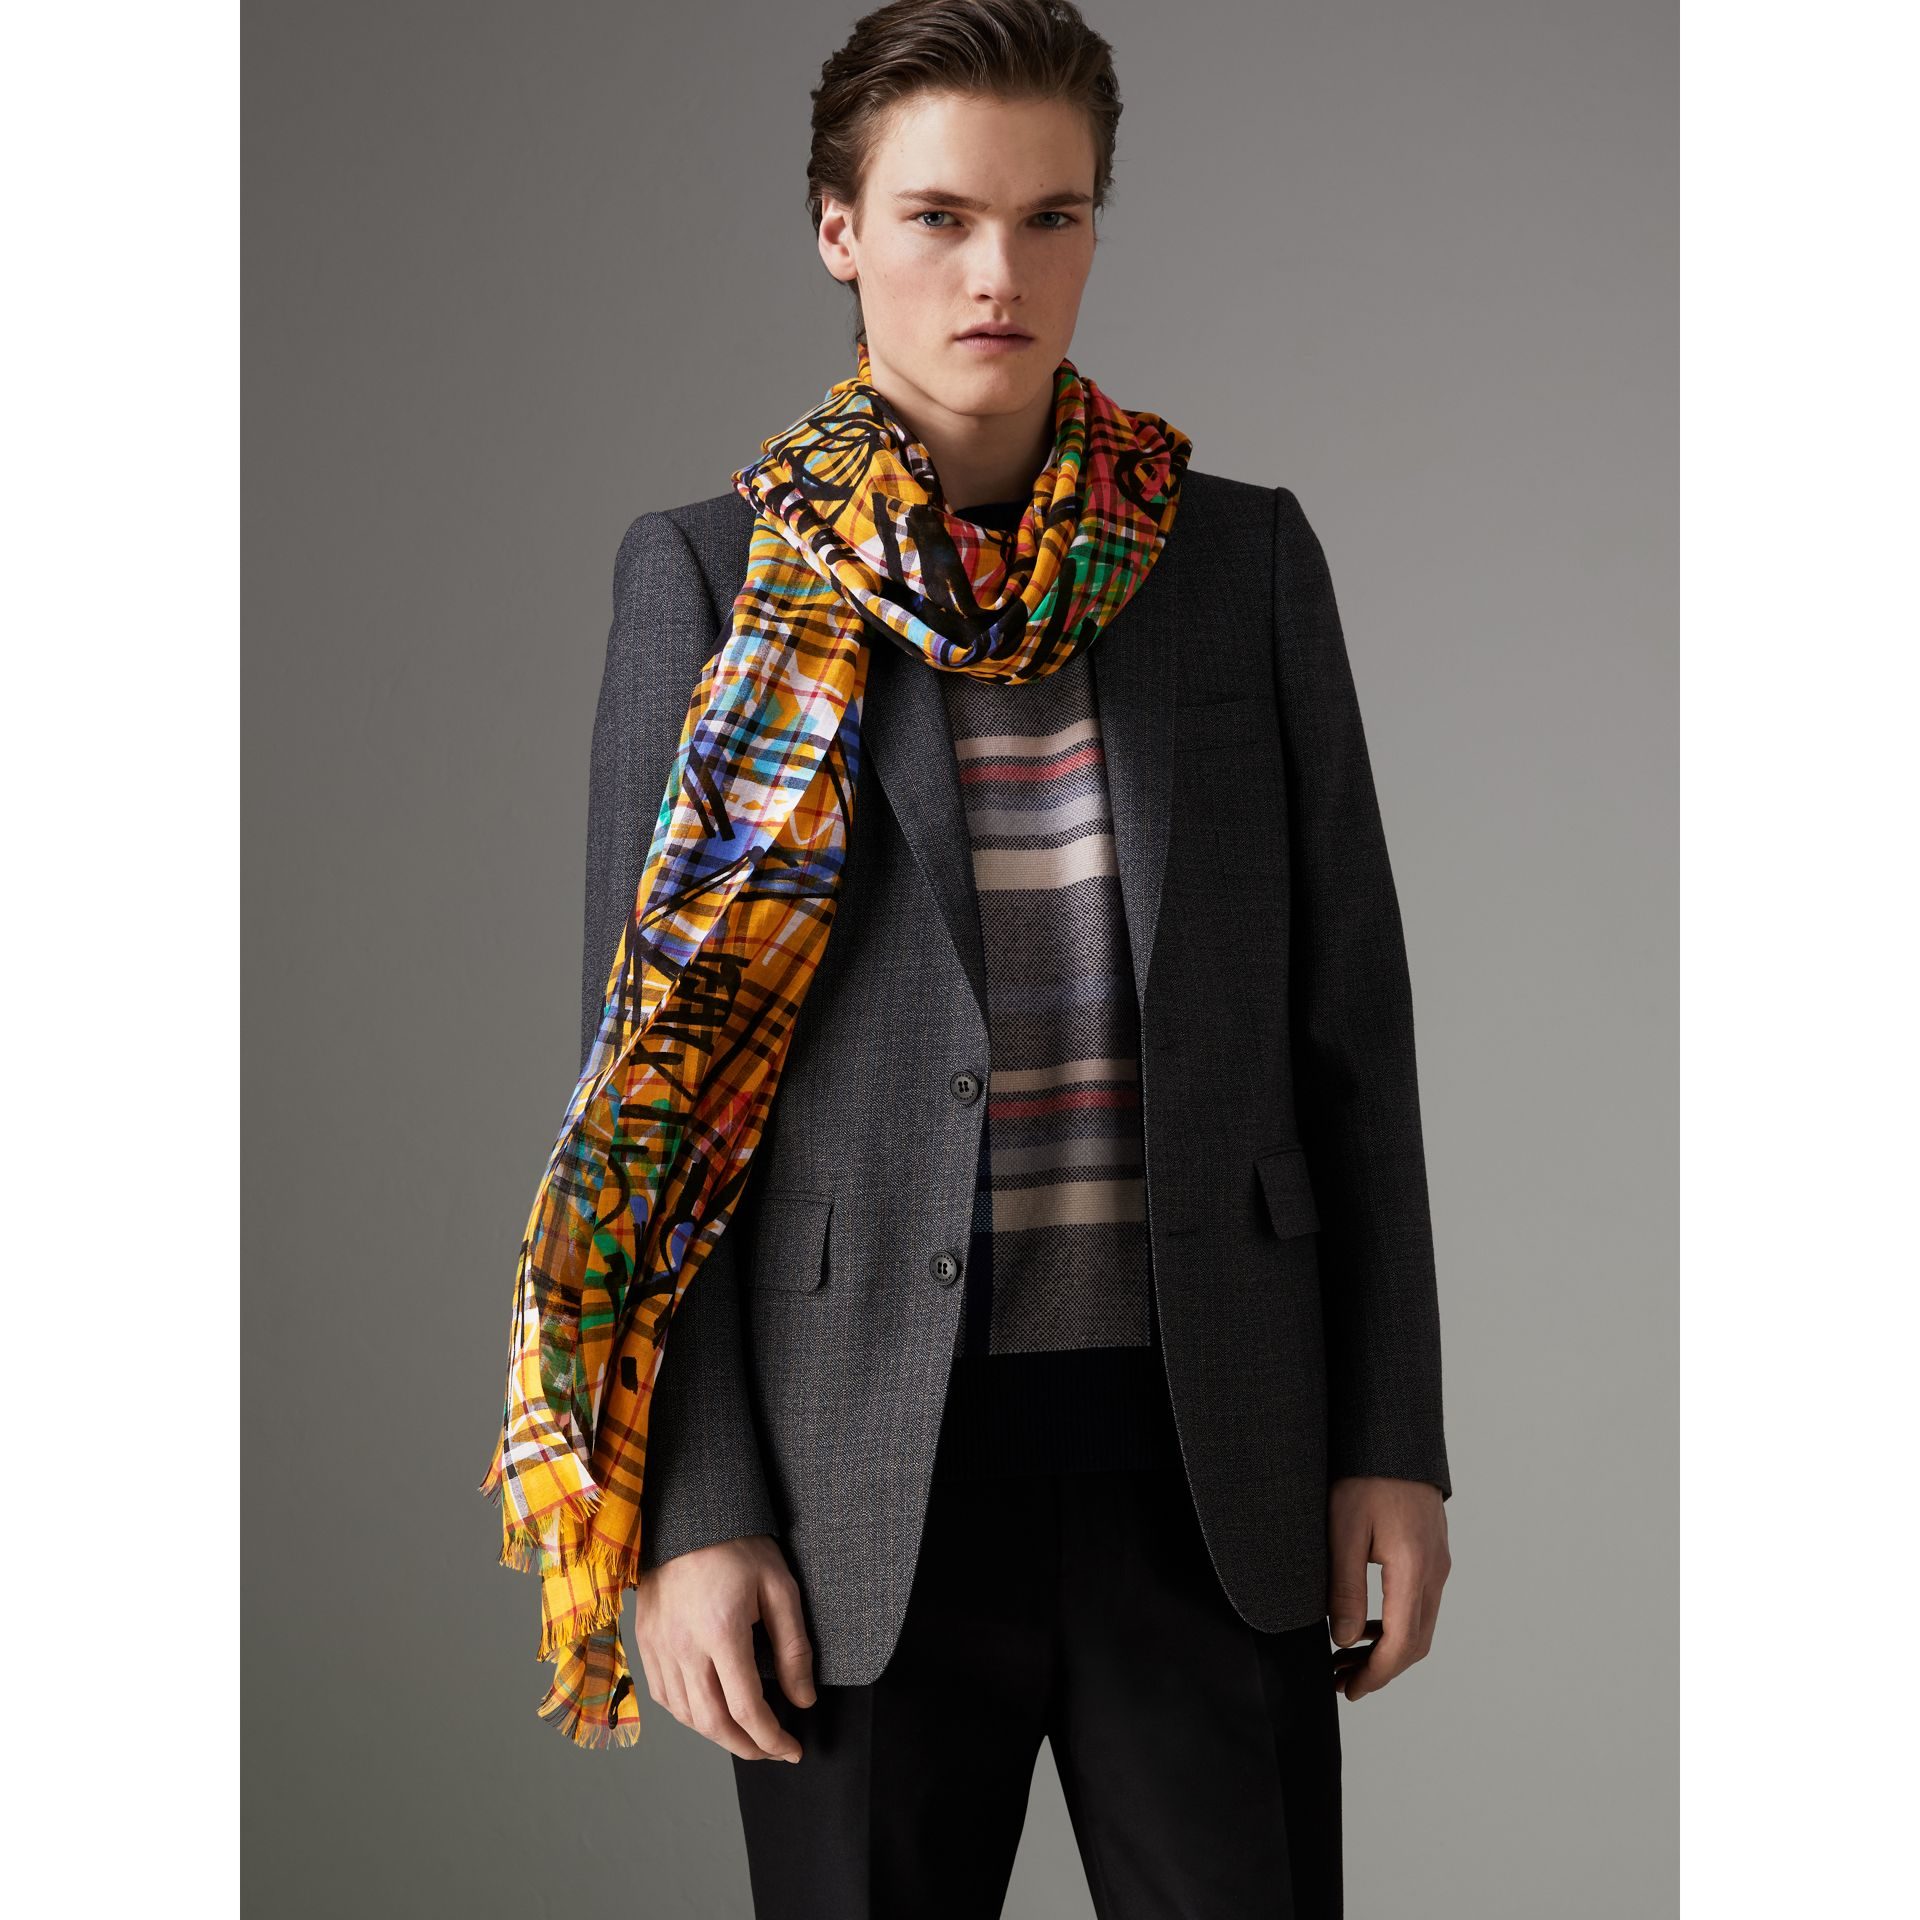 Graffiti Print Vintage Check Wool Silk Scarf in Amber Yellow | Burberry Australia - gallery image 3